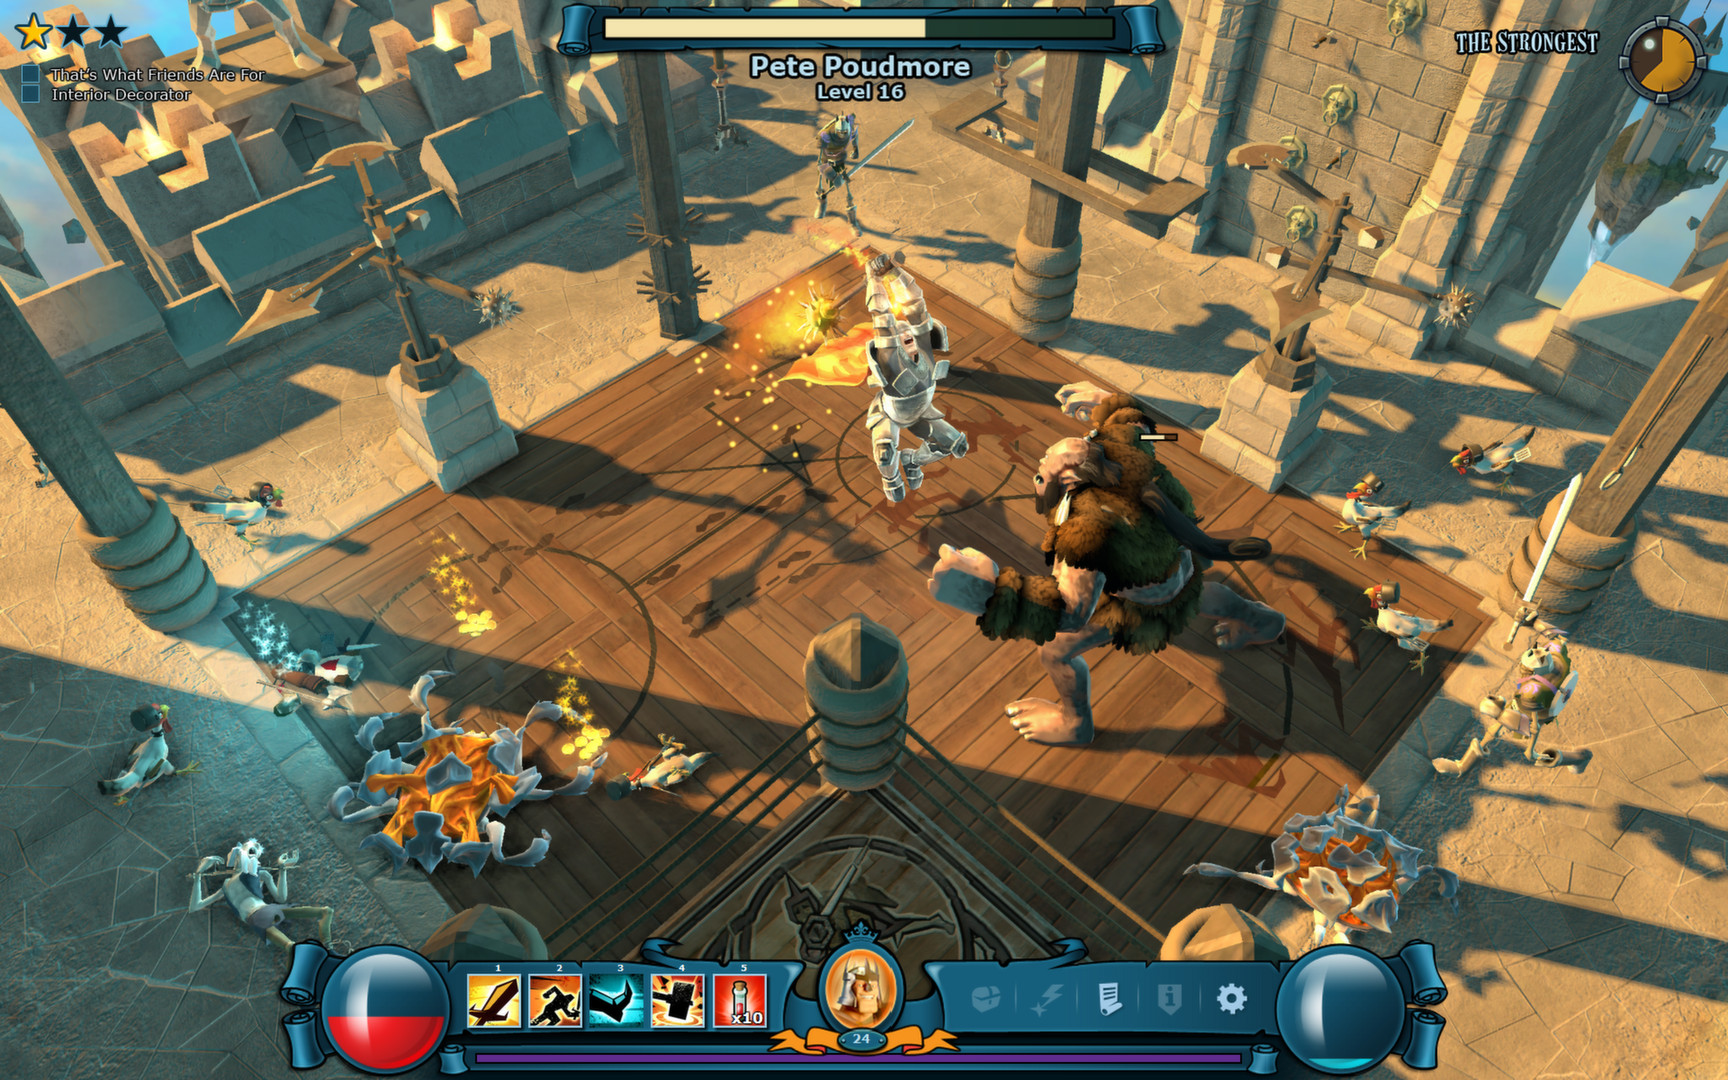 The Mighty Quest for Epic Loot gets Steam-y